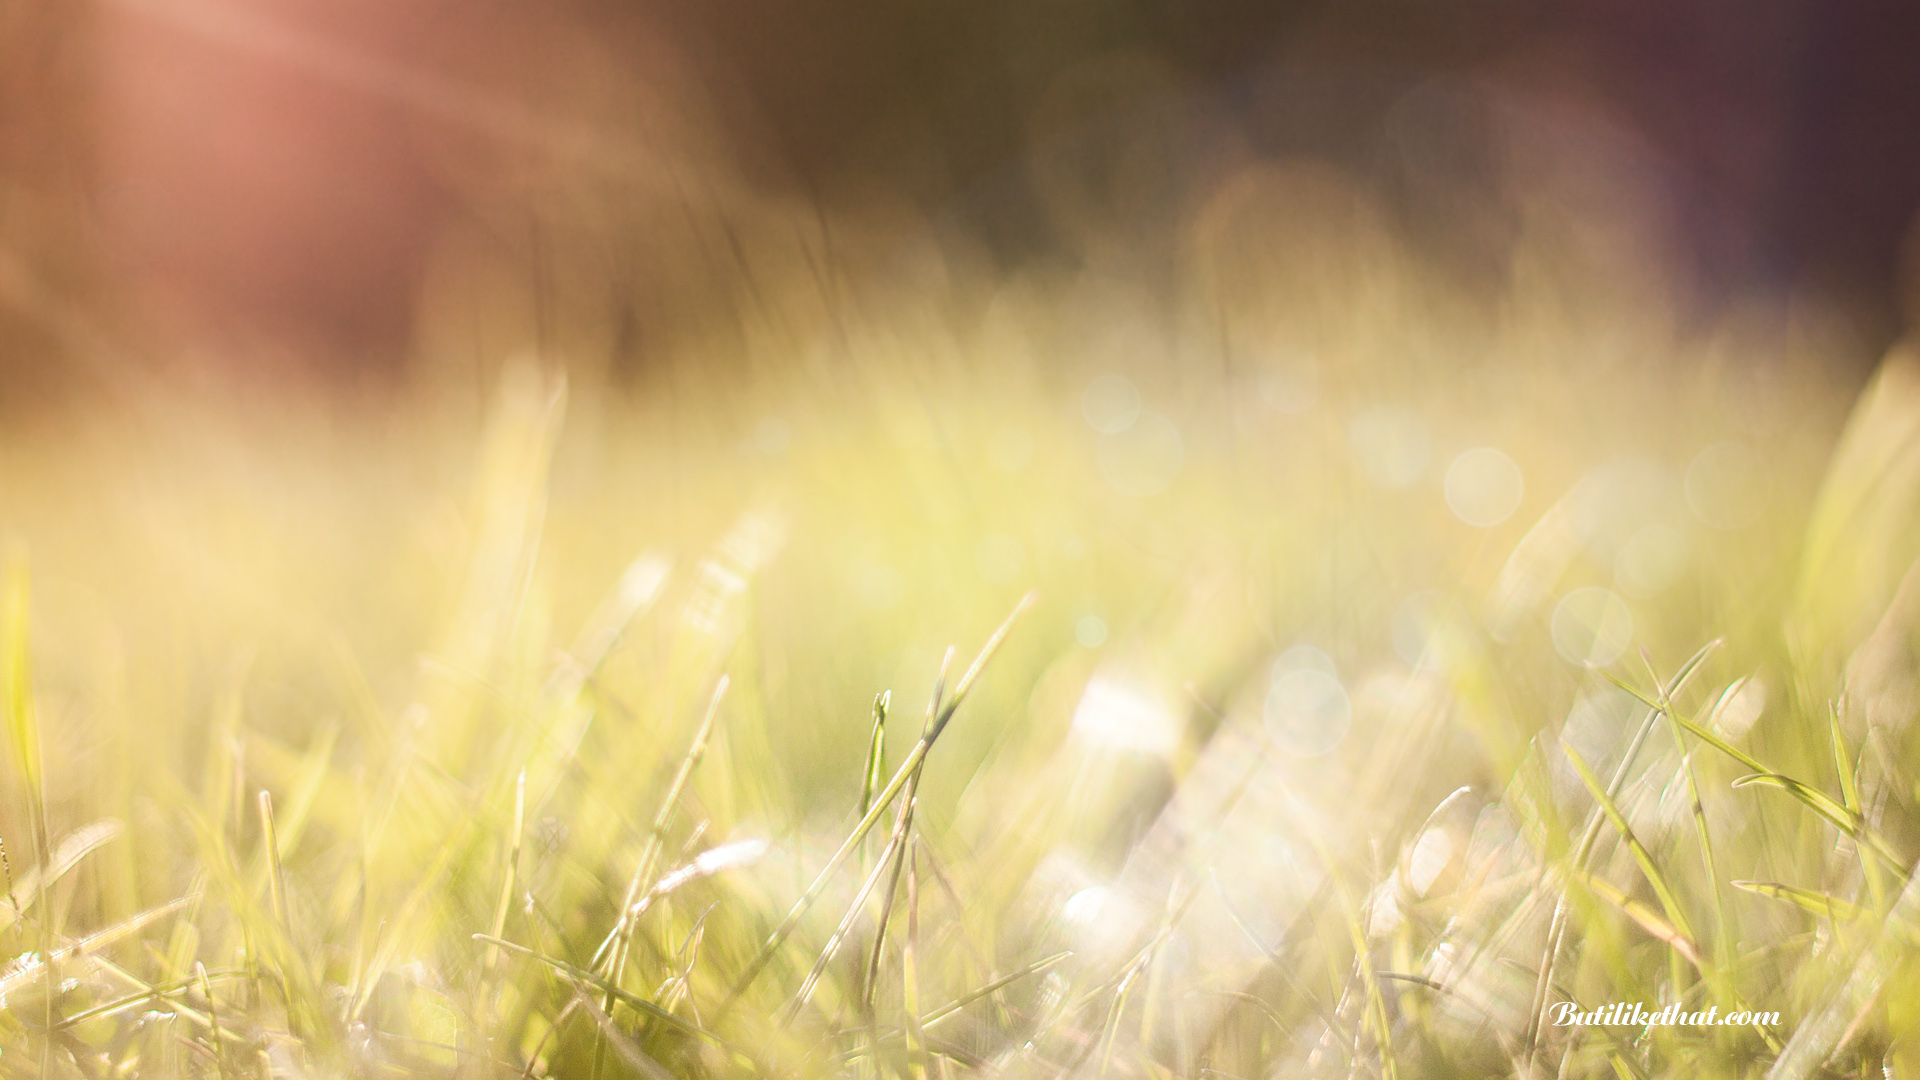 Sunlight Grass Wallpaper